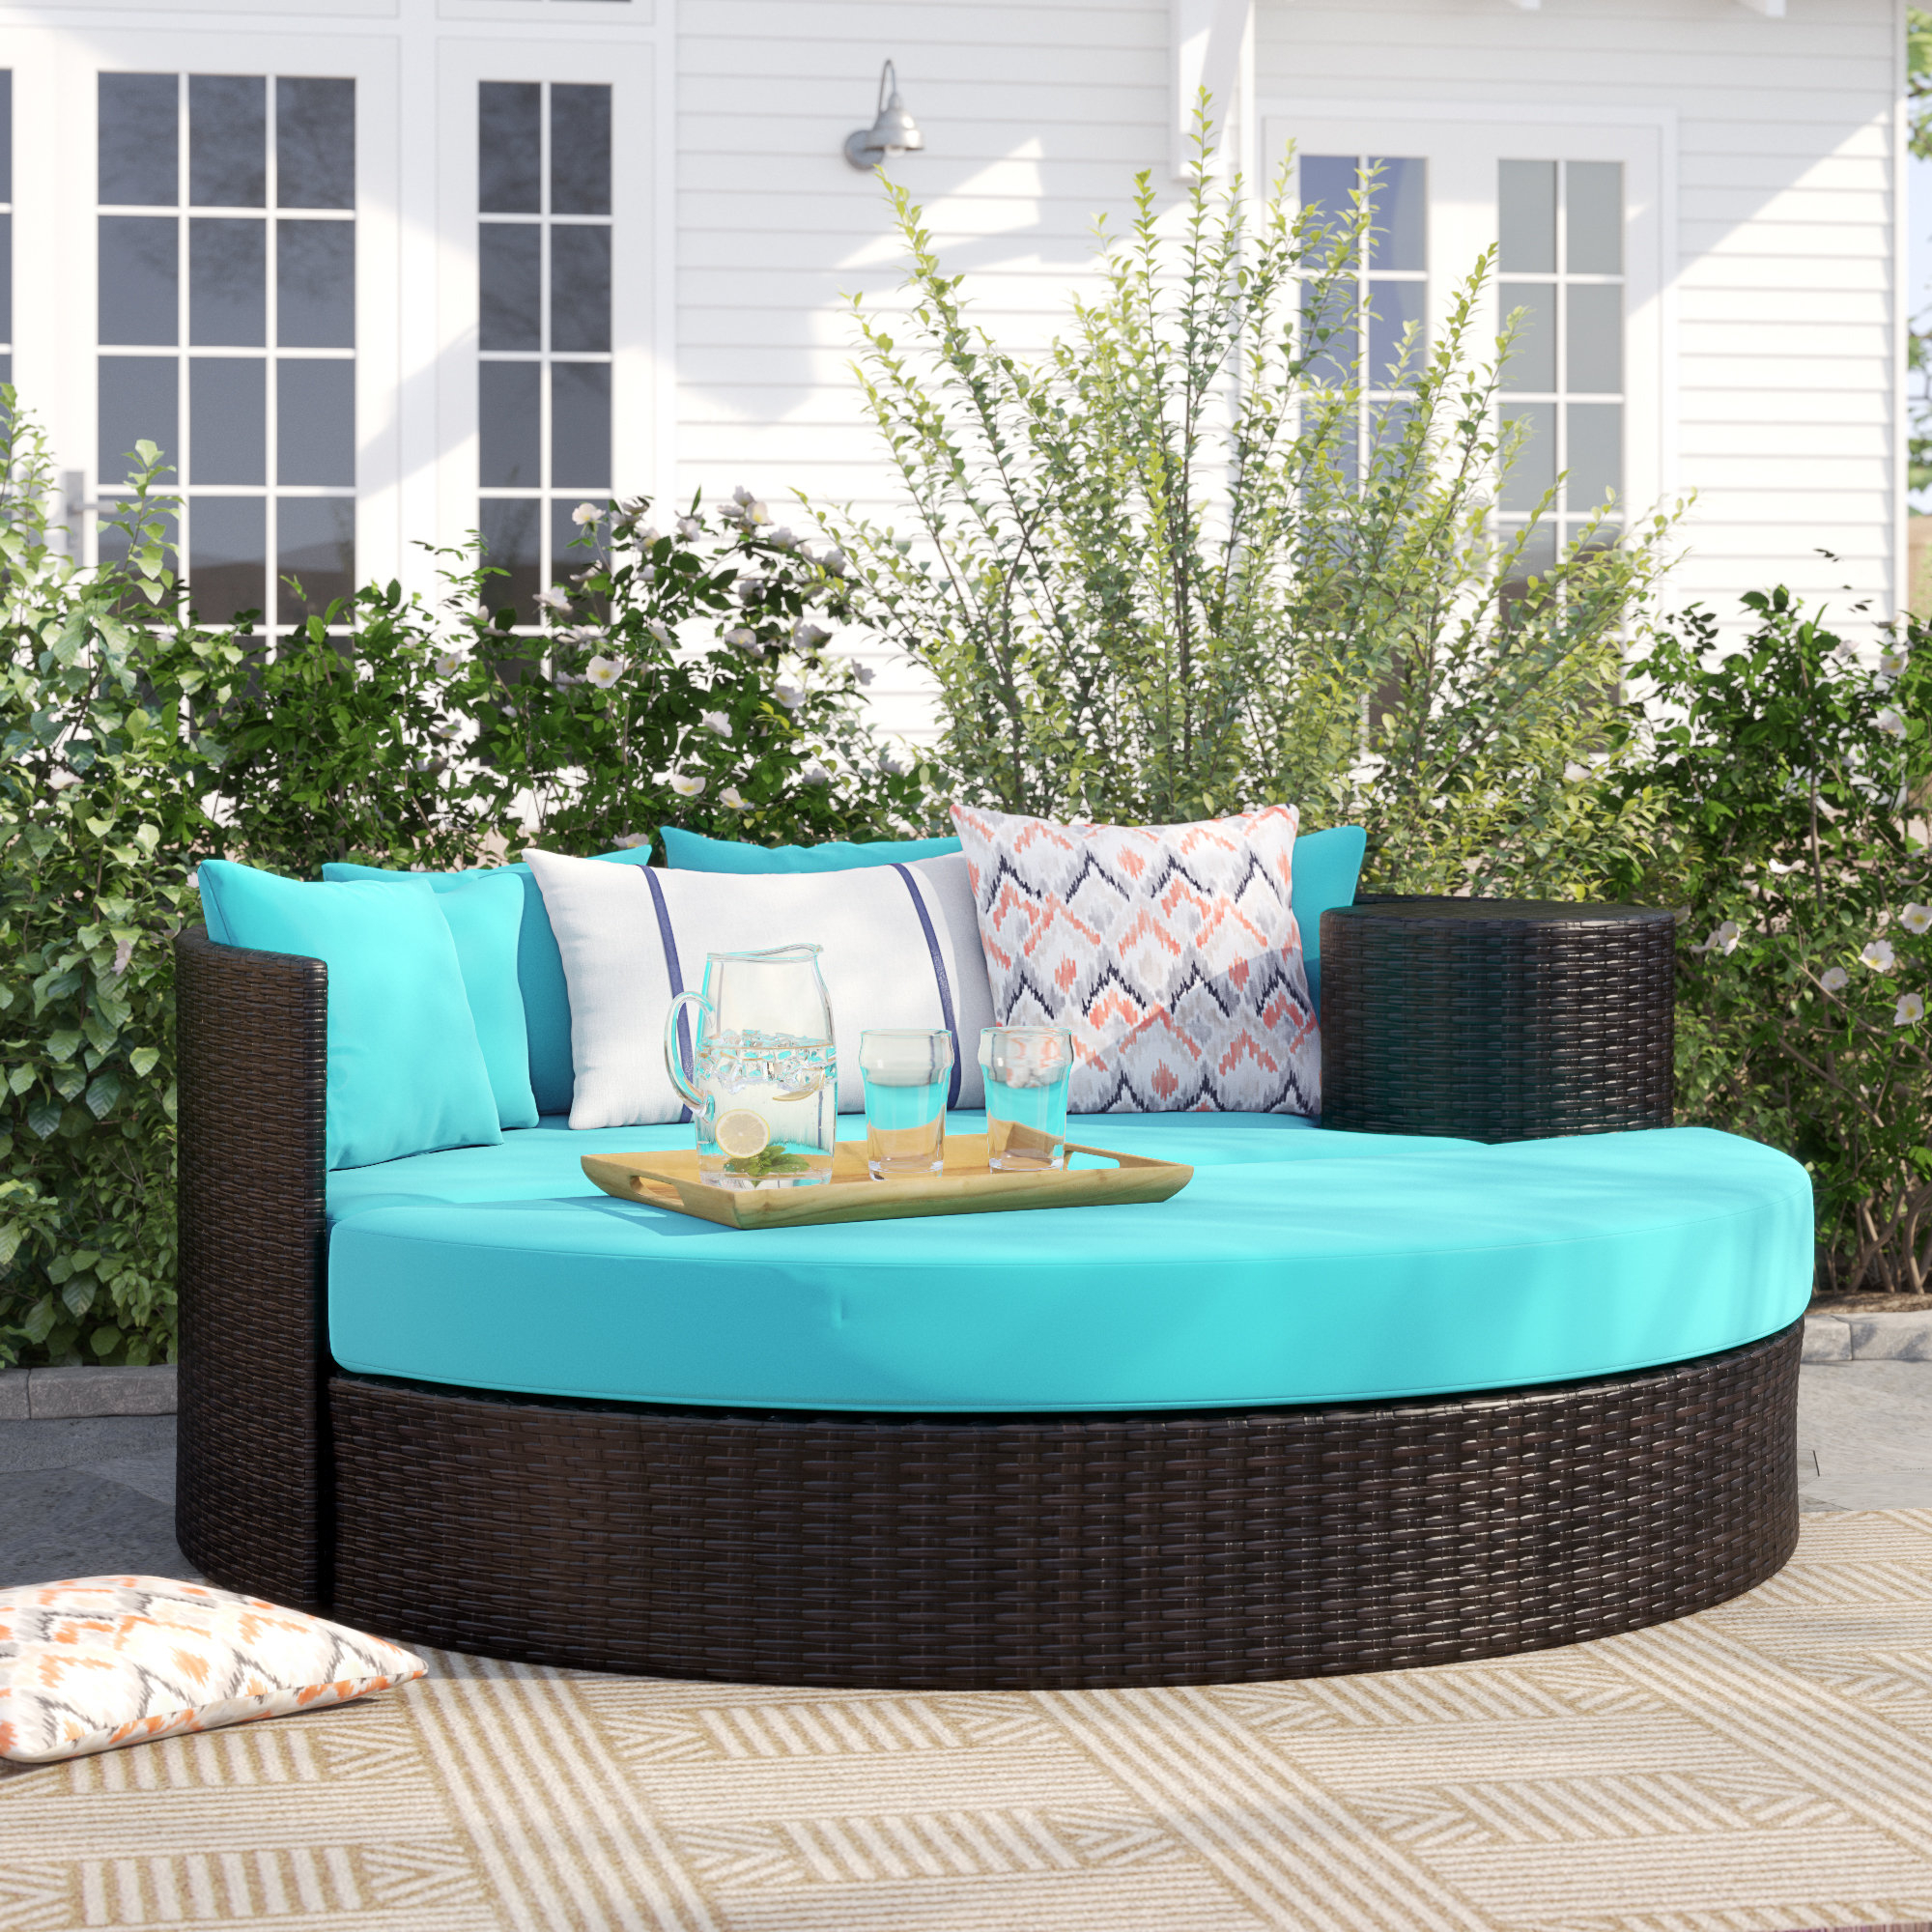 Falmouth Patio Daybeds With Cushions Within Well Known Freeport Patio Daybed With Cushion (View 10 of 20)